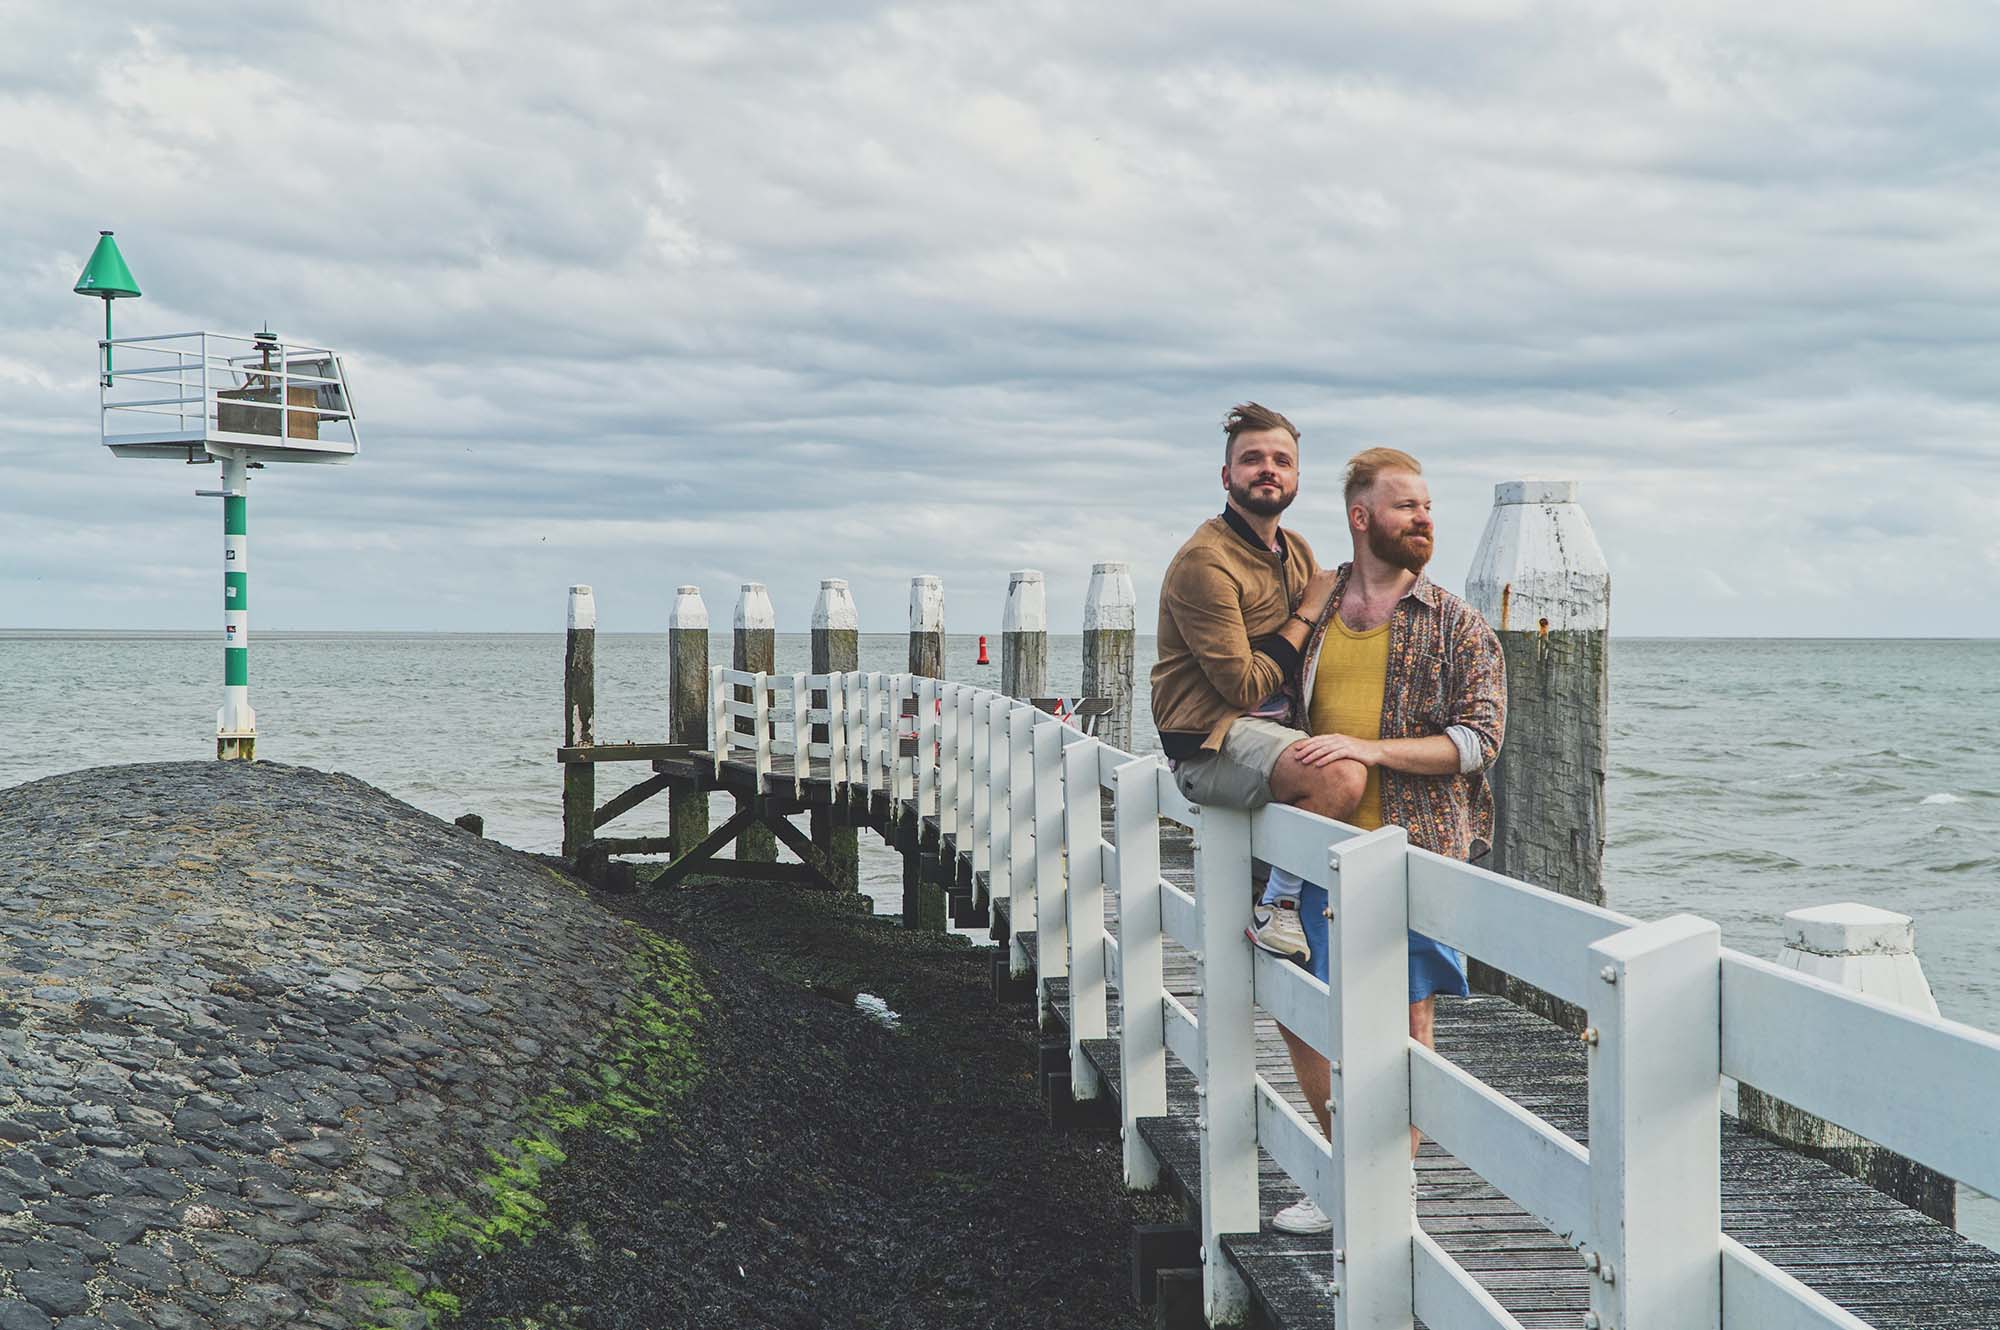 Gay Vlieland Trip Welcoming boats and ships in the harbor of Vlieland © Coupleofmen.com